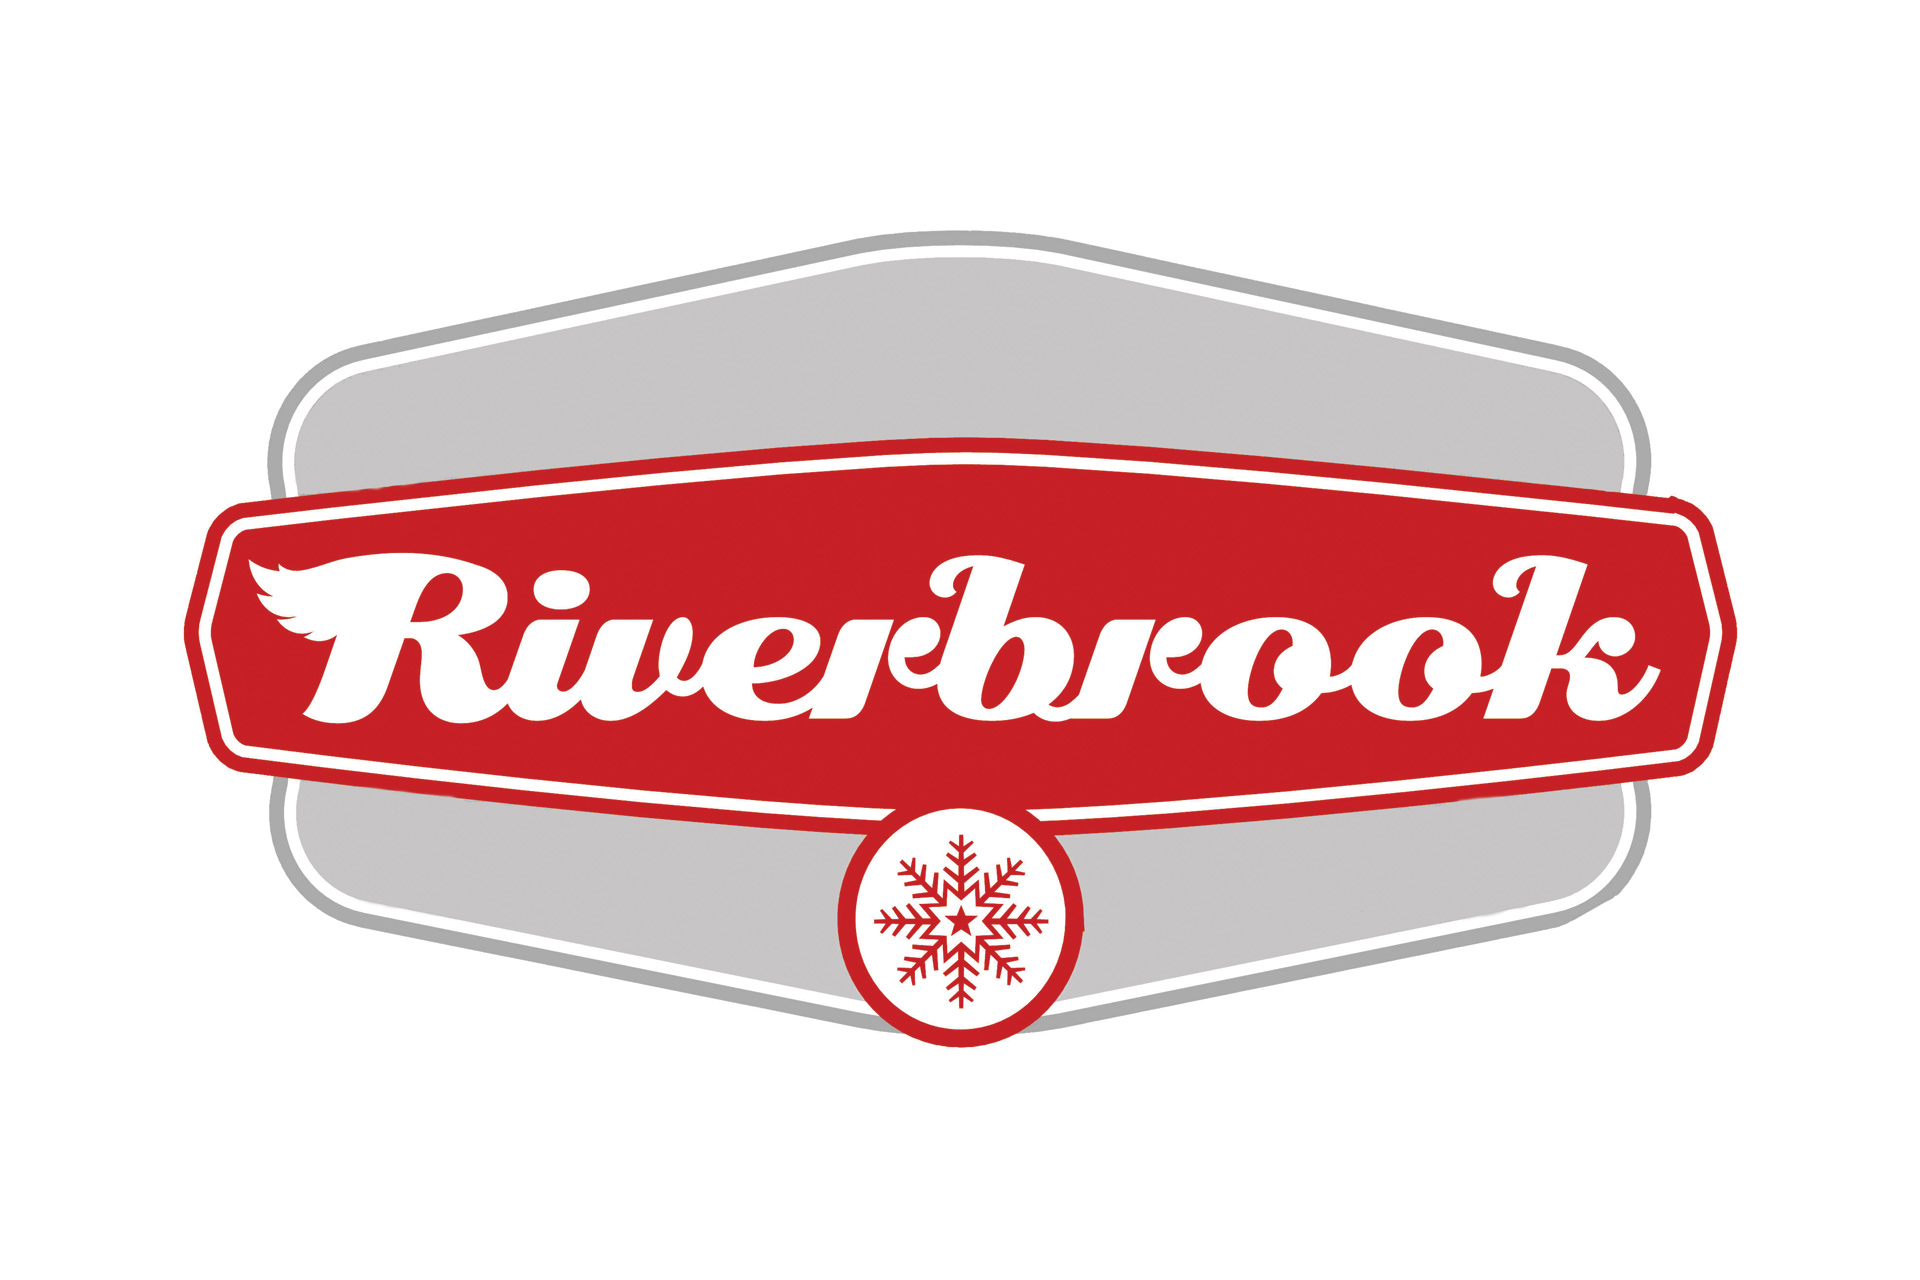 Riverbrook Bike & Ski